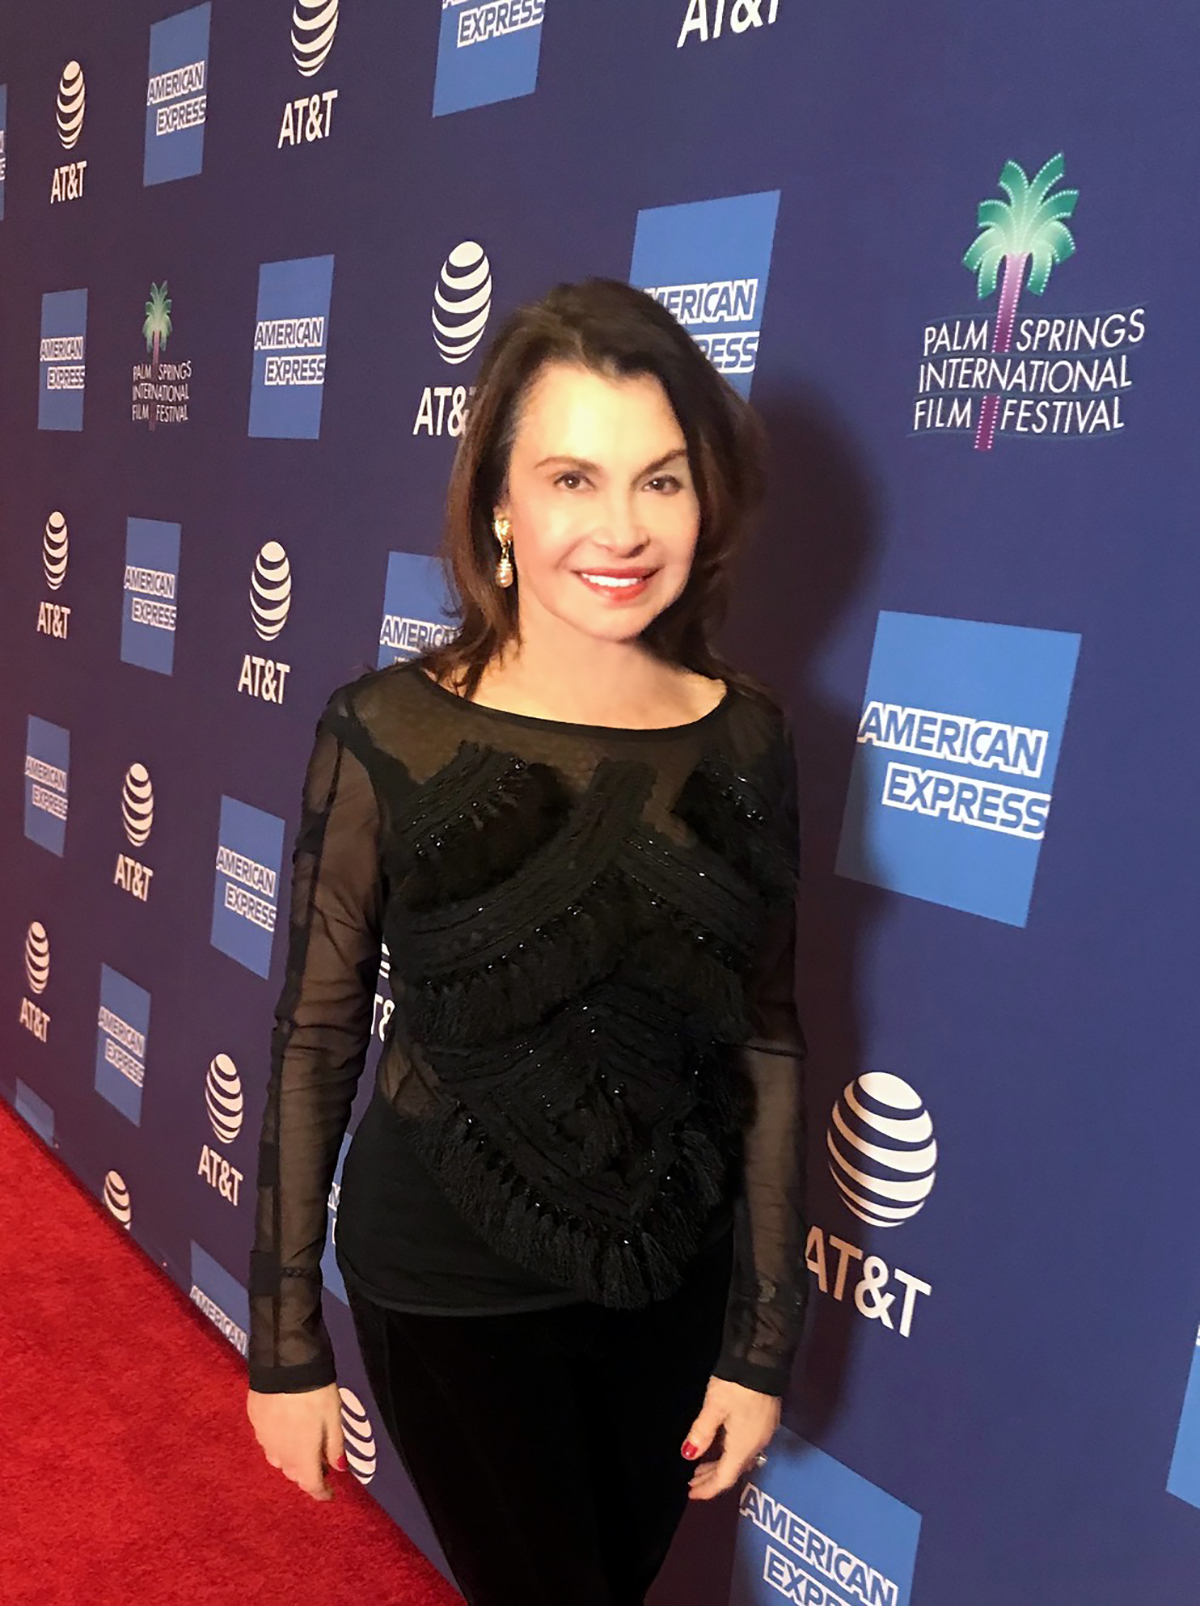 I On Fashion from The Palm Springs International Film Festival